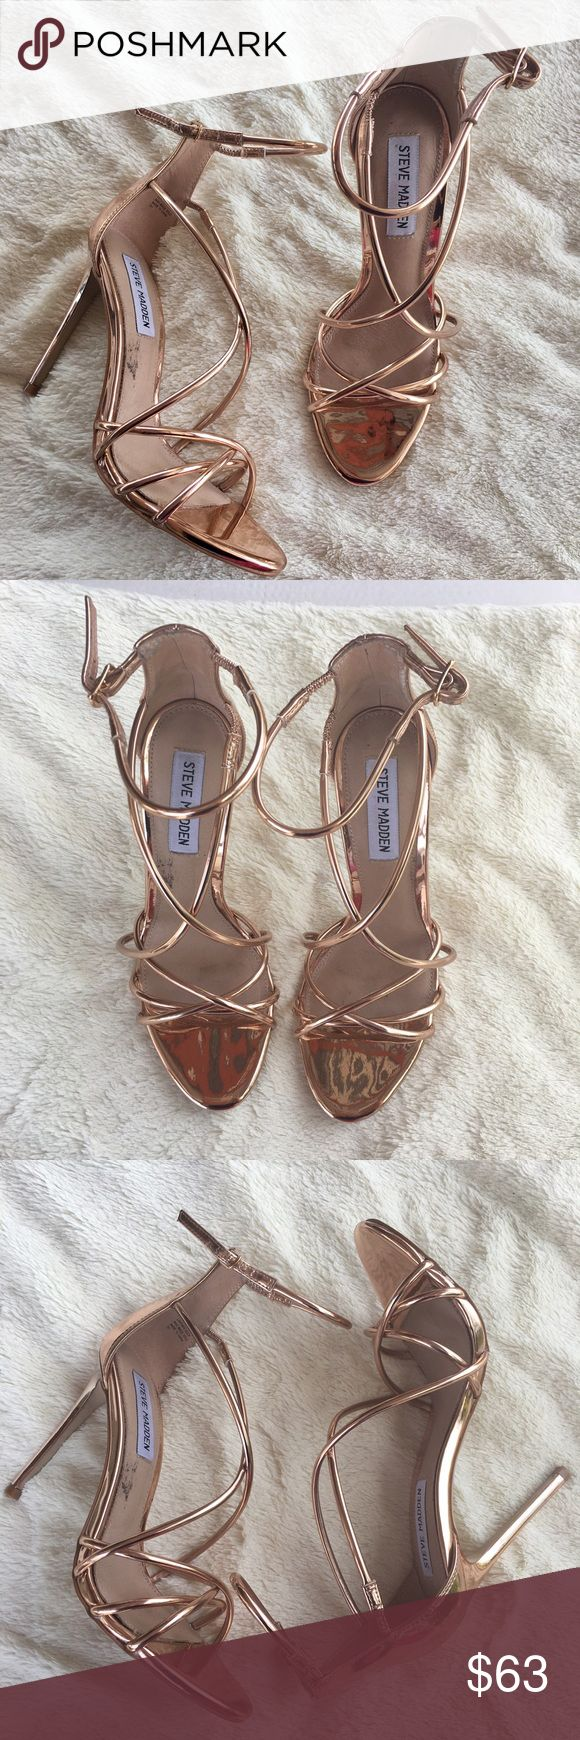 Steve Madden 'Satire' Metallic Strappy Sandal Steve Madden Metallic Strappy Sandal 'Satire'✨ Size:71/2 Color:  Rose Gold Heel height is just over 4 inches. Beautiful sexy heel that will be turning heads wherever you go. Perfect for a night out or prom. This style can be dressed up or worn casual with a pair or skinny jeans and a bodycon top! Steve Madden Shoes Heels